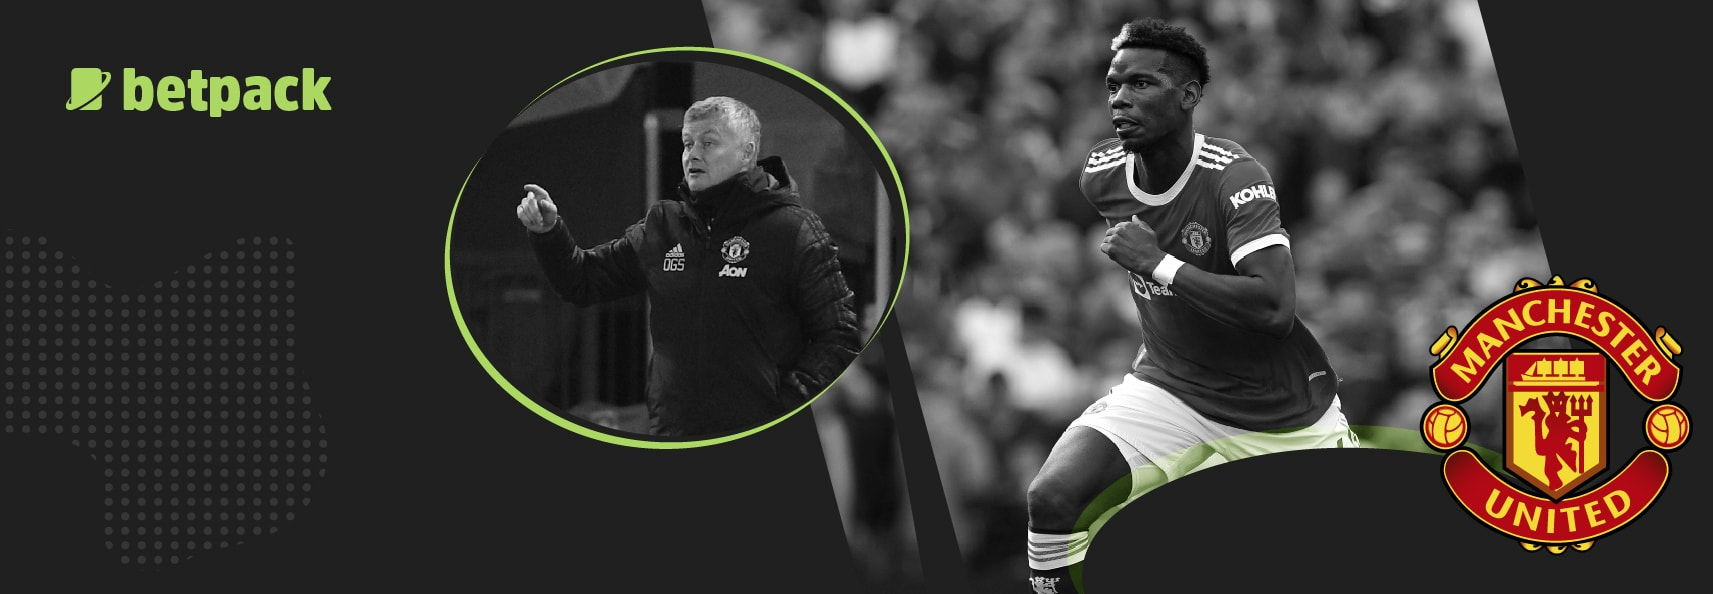 Trophies could convince Pogba to stay at Man Utd